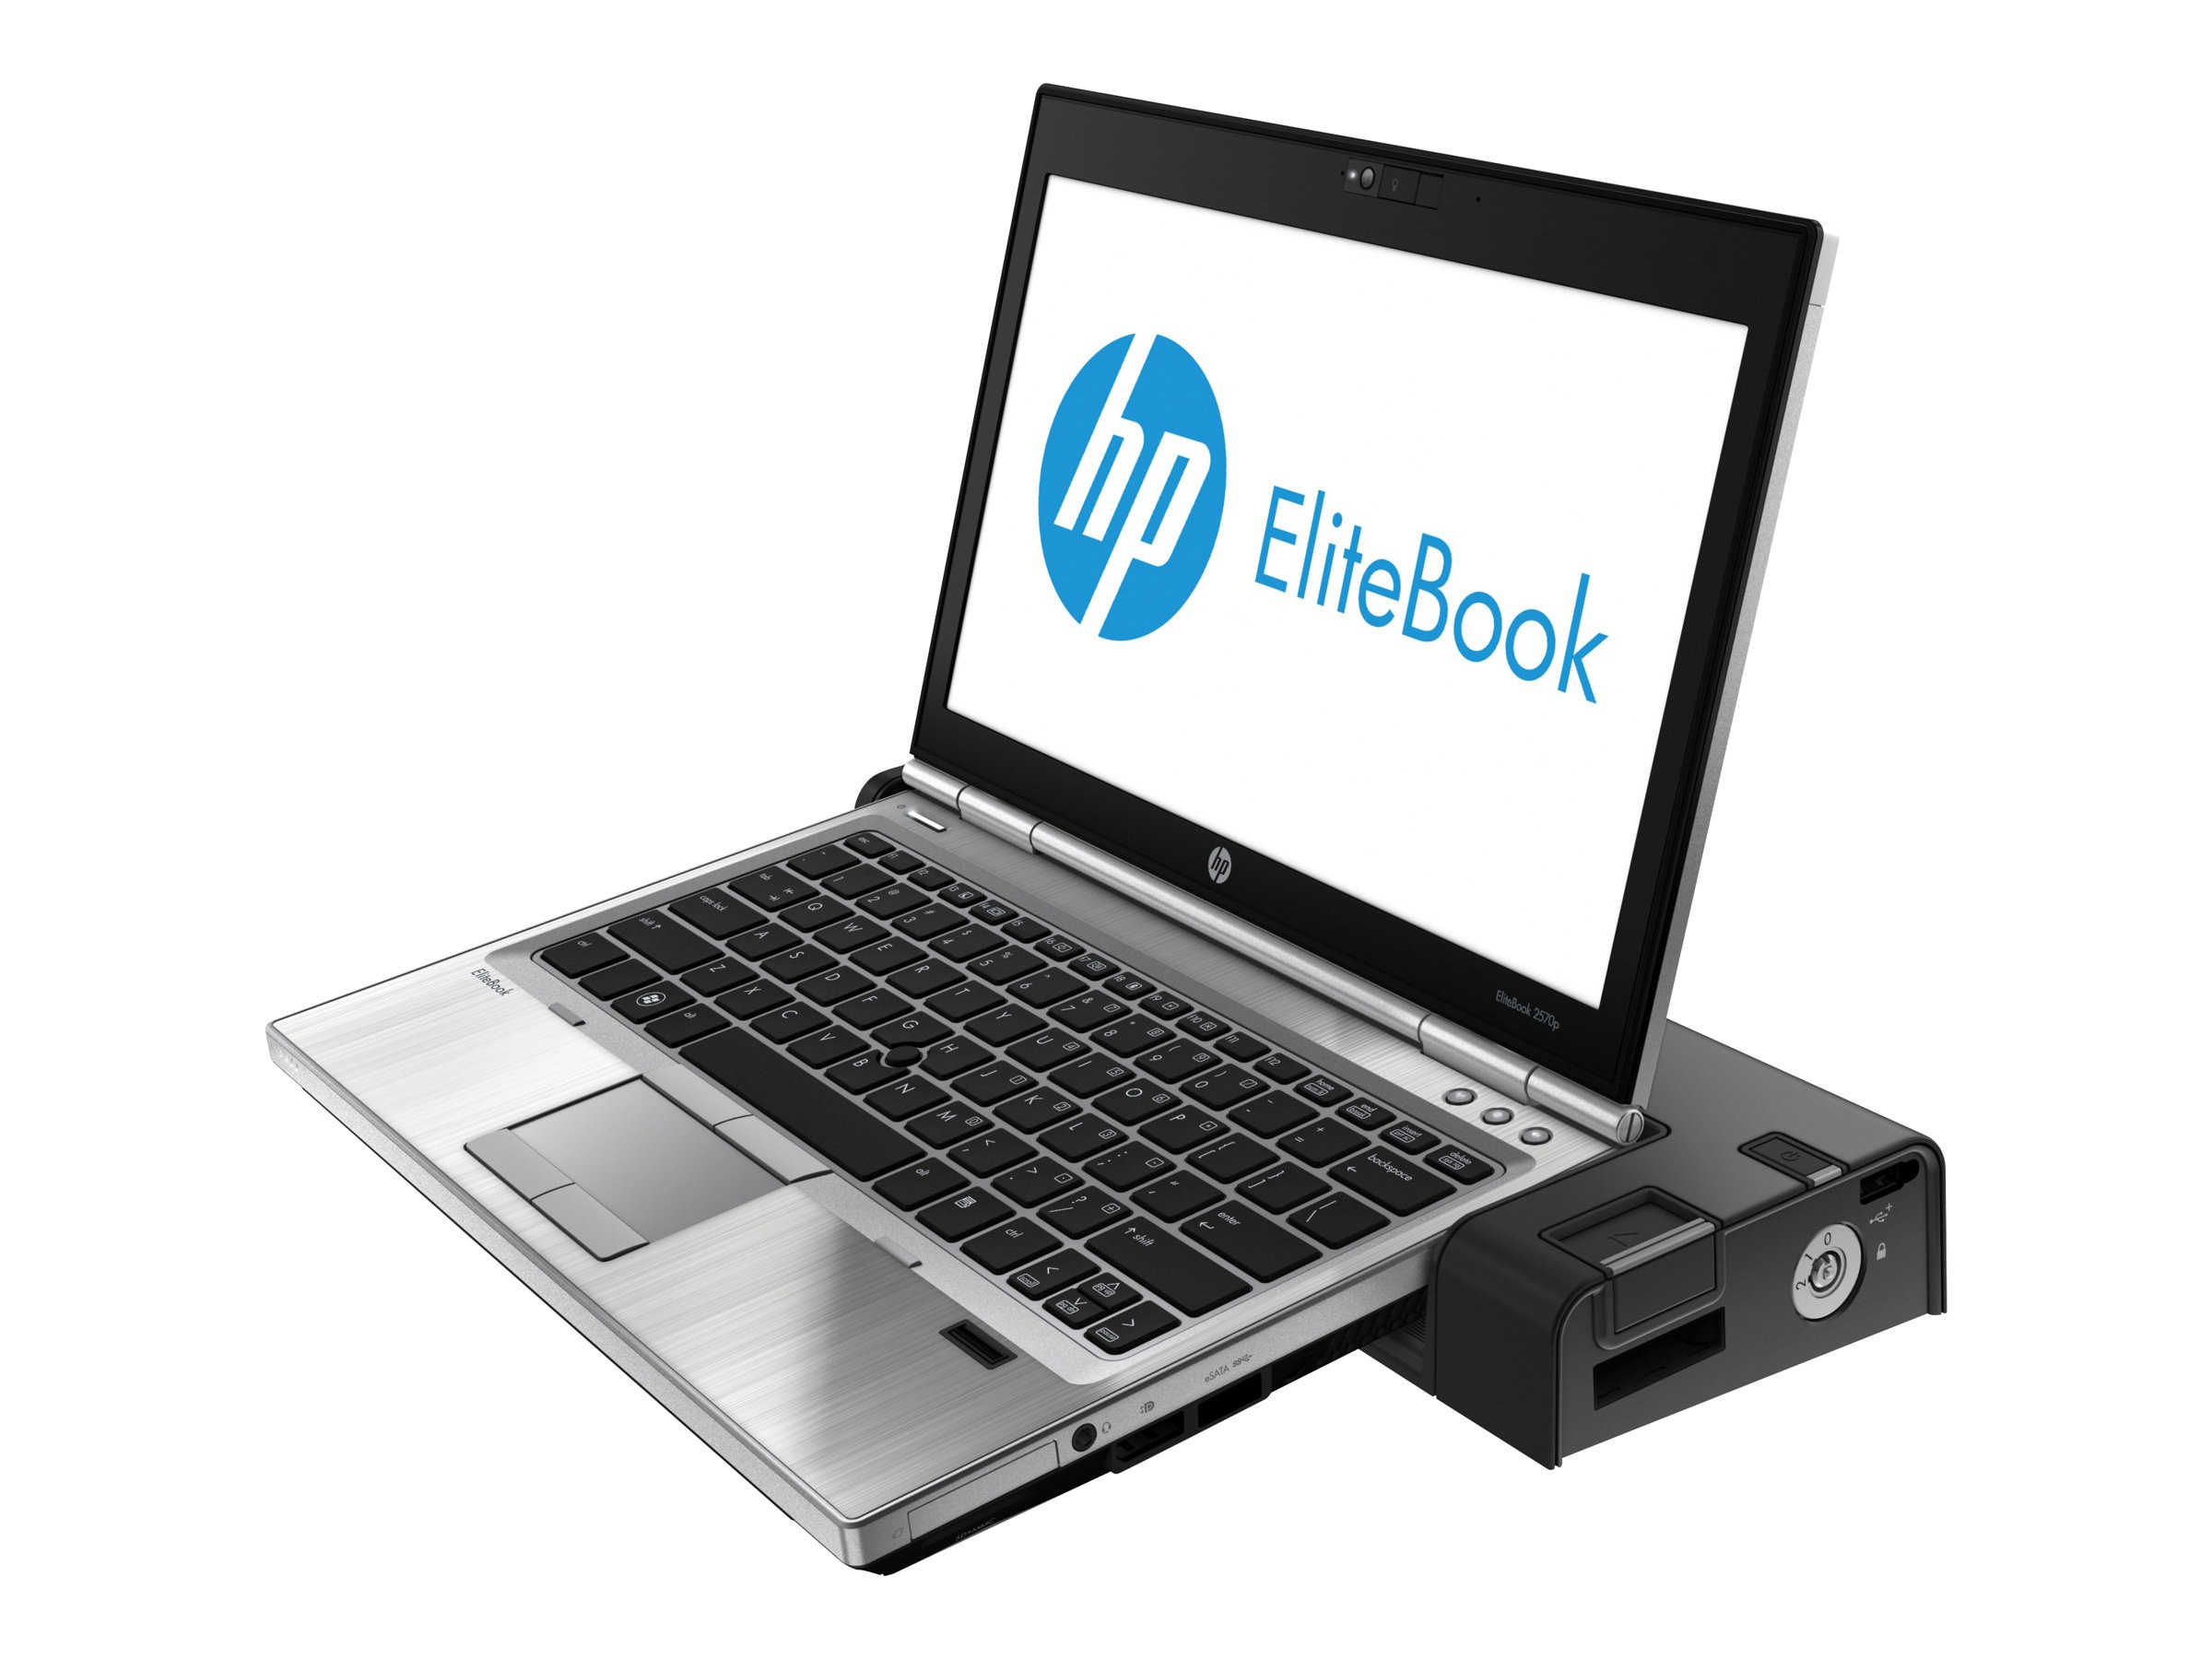 HP EliteBook 2570p 2.9GHz Core i5 12.5in display, D2W43AW#ABA